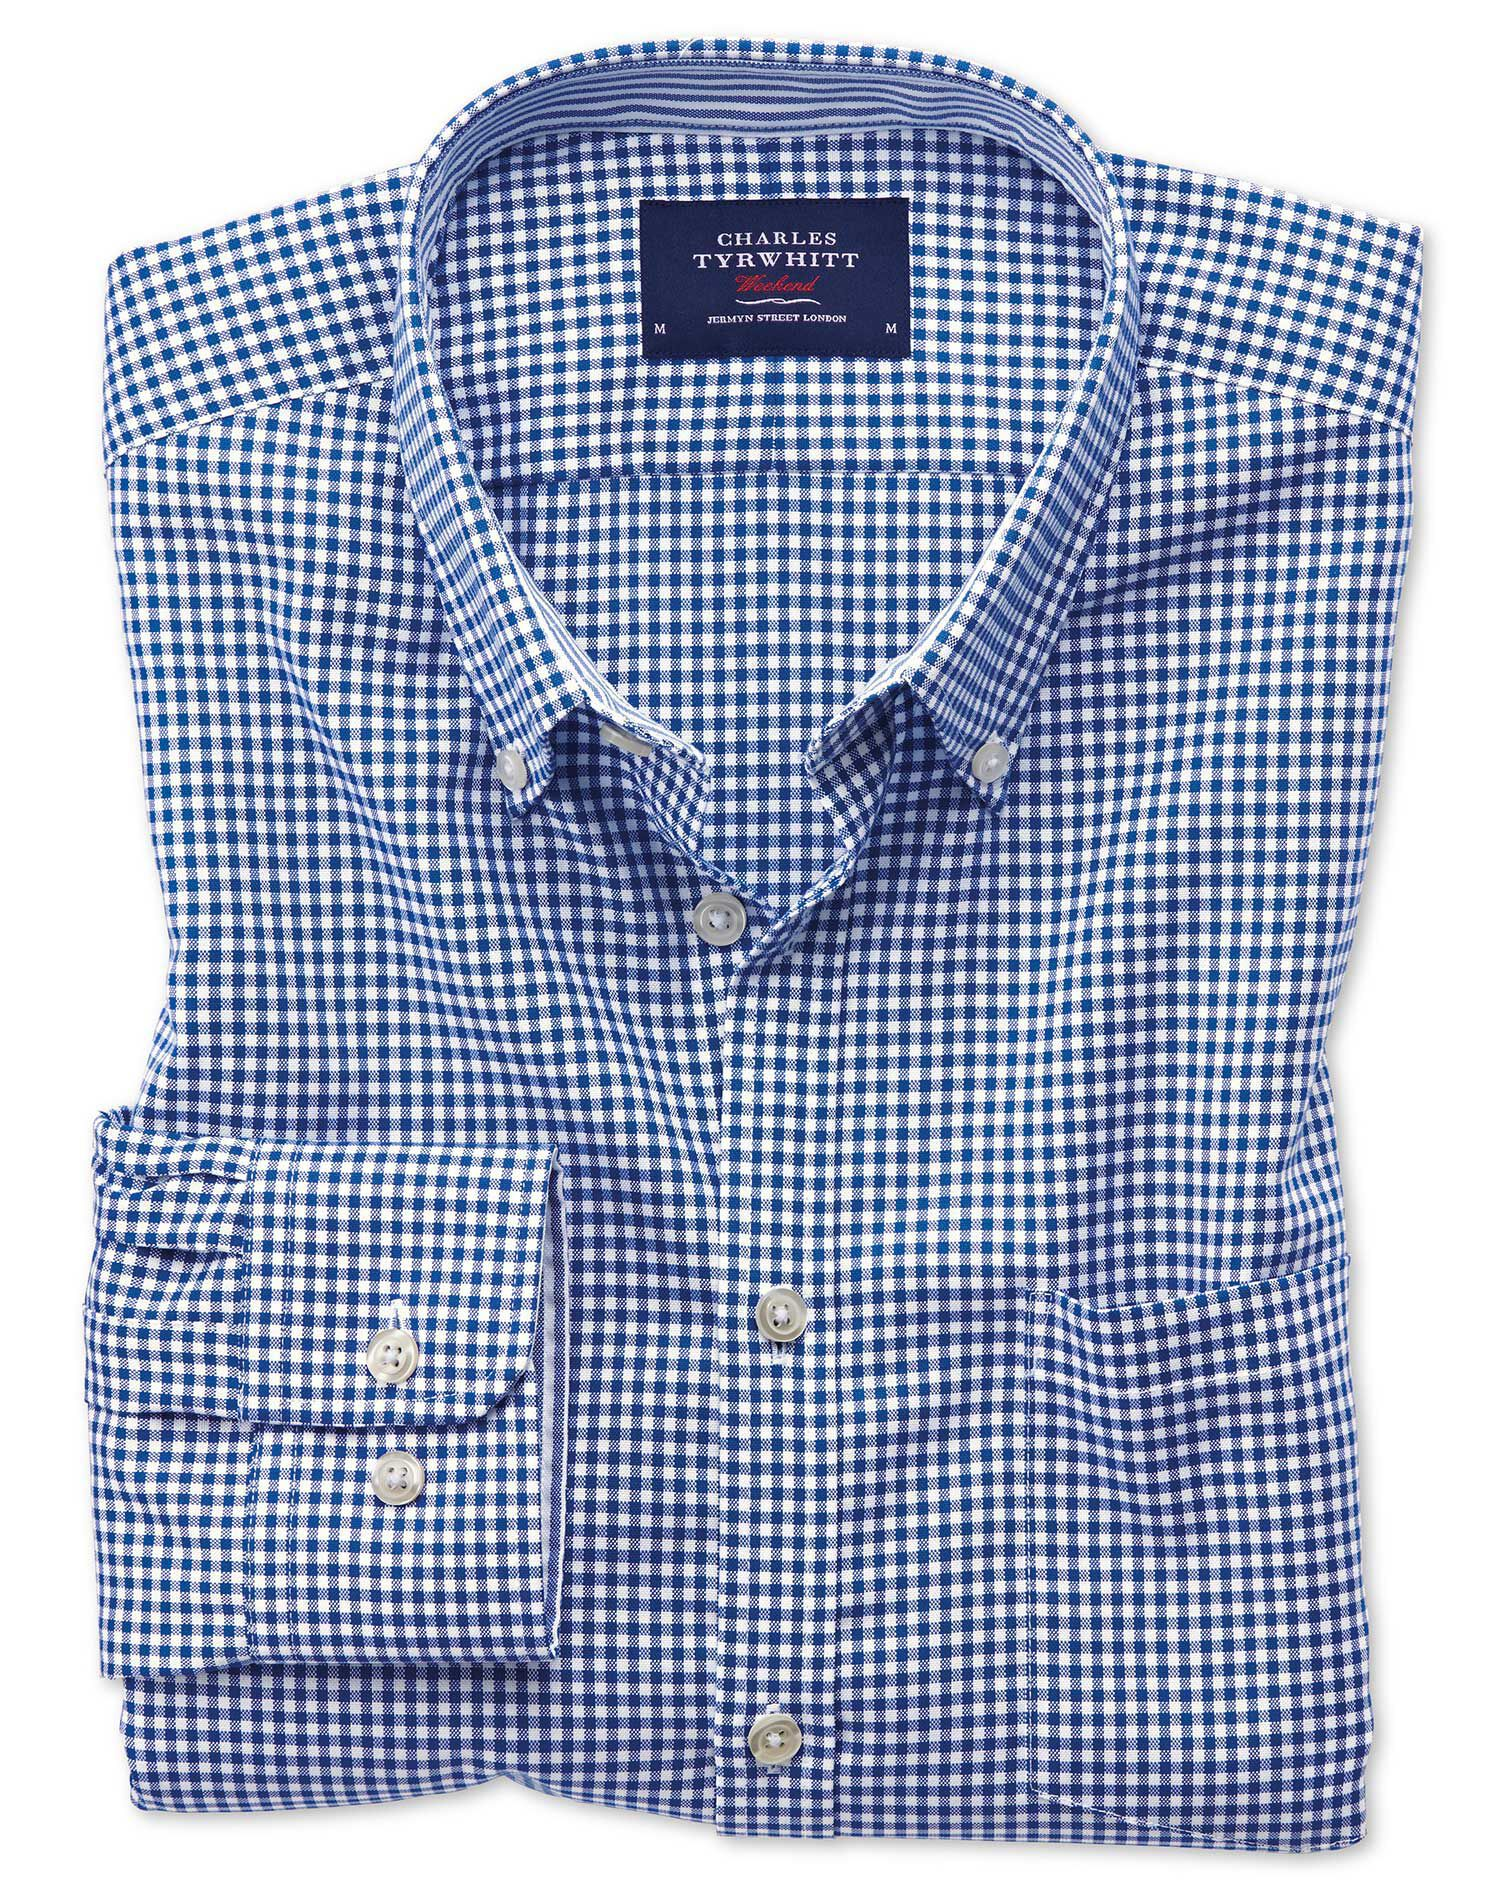 Slim Fit Button-Down Non-Iron Oxford Gingham Royal Blue Cotton Shirt Single Cuff Size Small by Charl